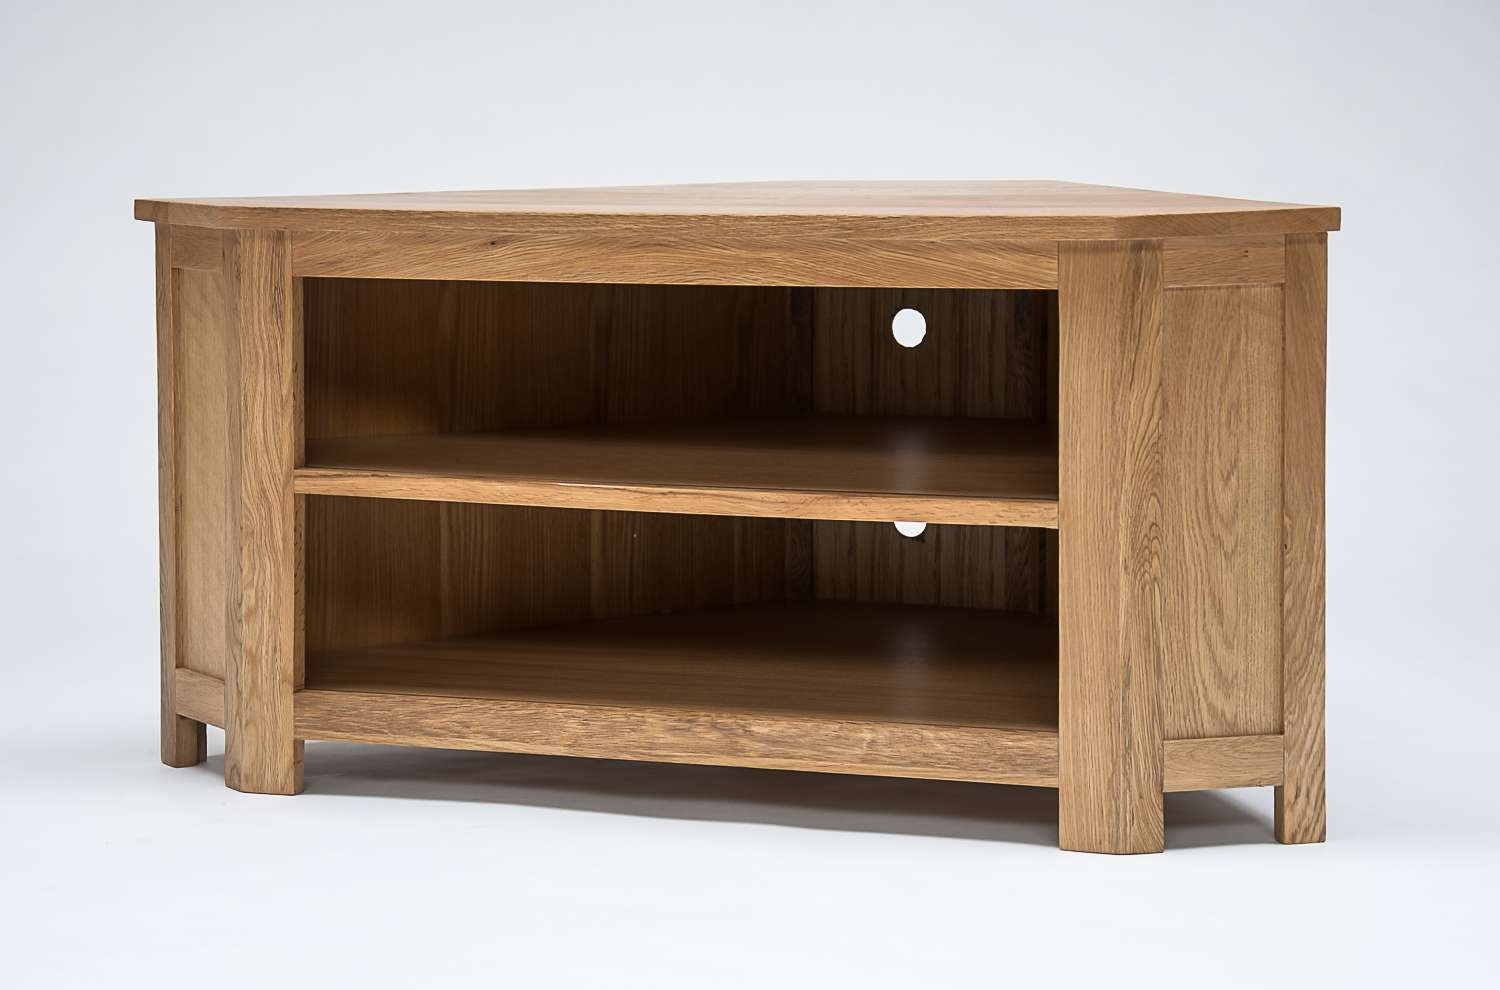 Lansdown Oak Low Corner Tv Cabinet | Oak Furniture Solutions Intended For Solid Oak Corner Tv Cabinets (View 18 of 20)